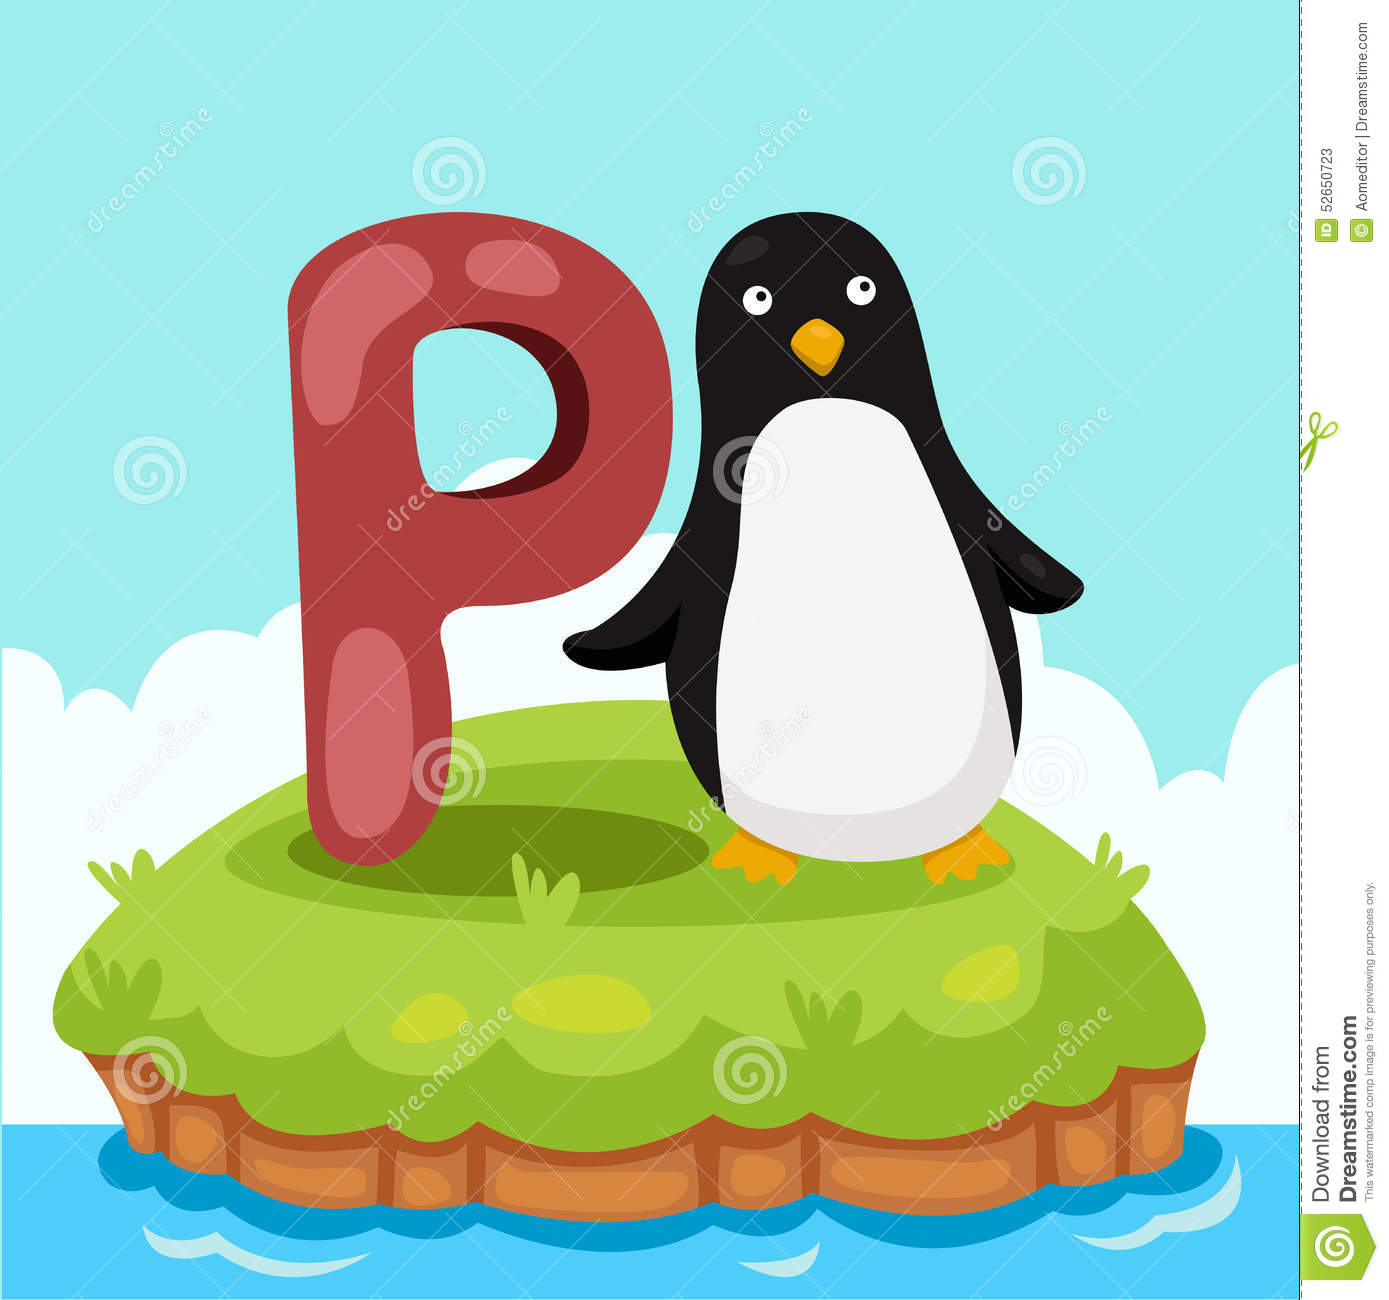 3 Letter Cartoon Characters : Illustrator of letter p is for penquin stock vector